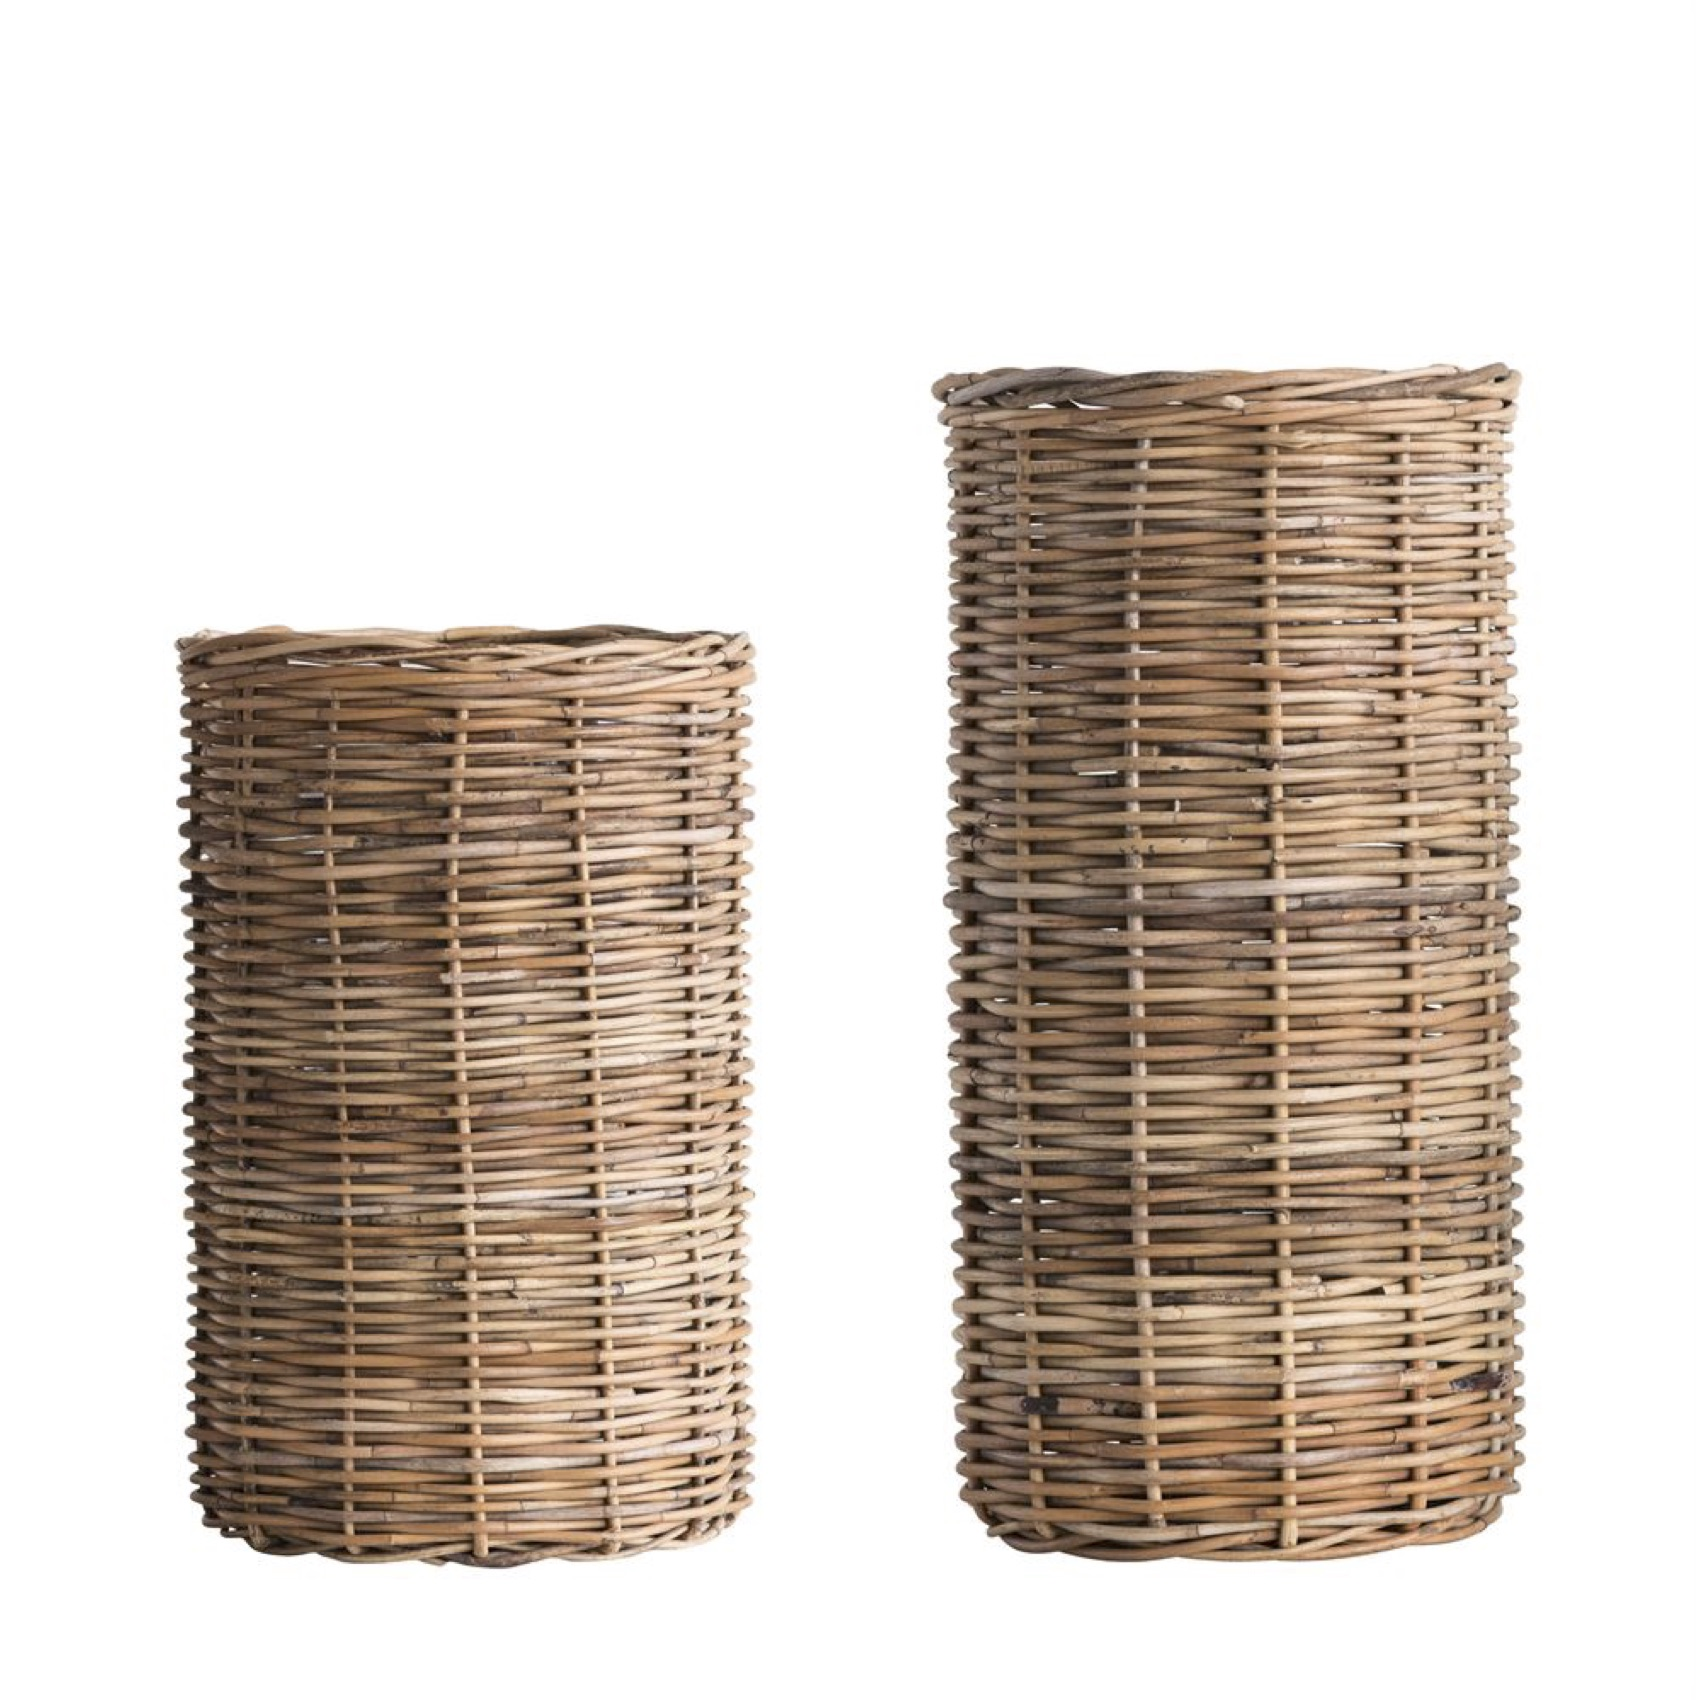 Woven Containers-2.jpg